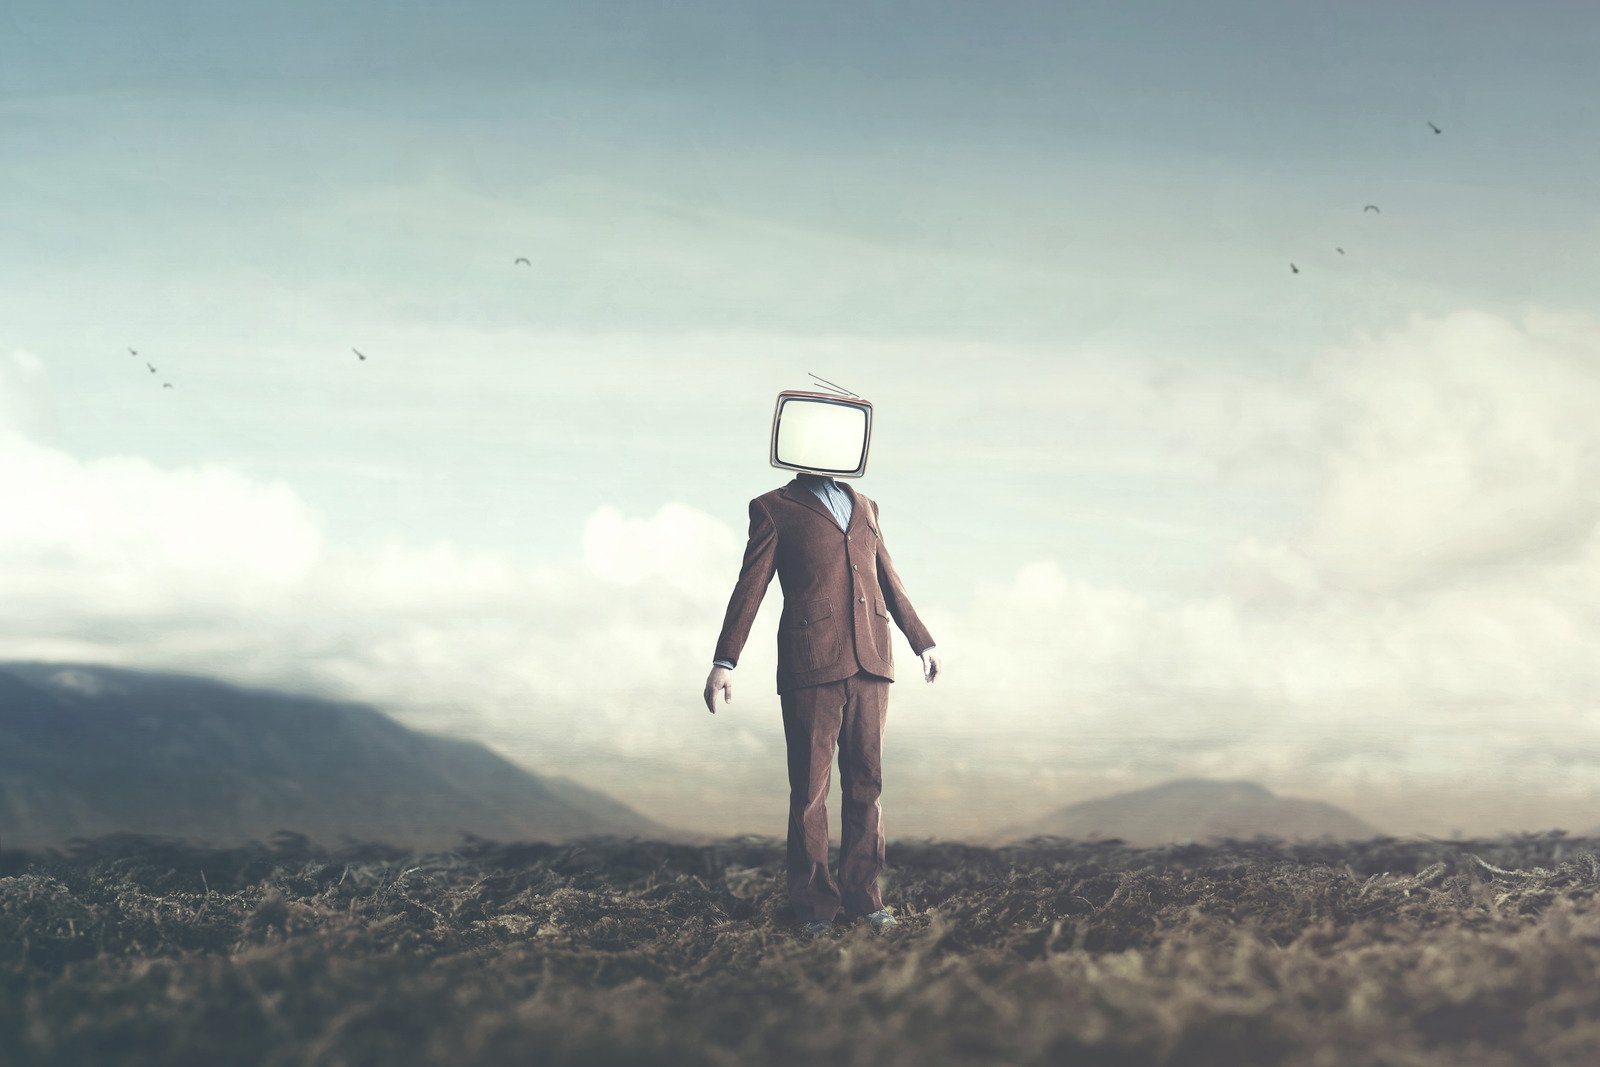 surreal picture of a man with a TV on his head